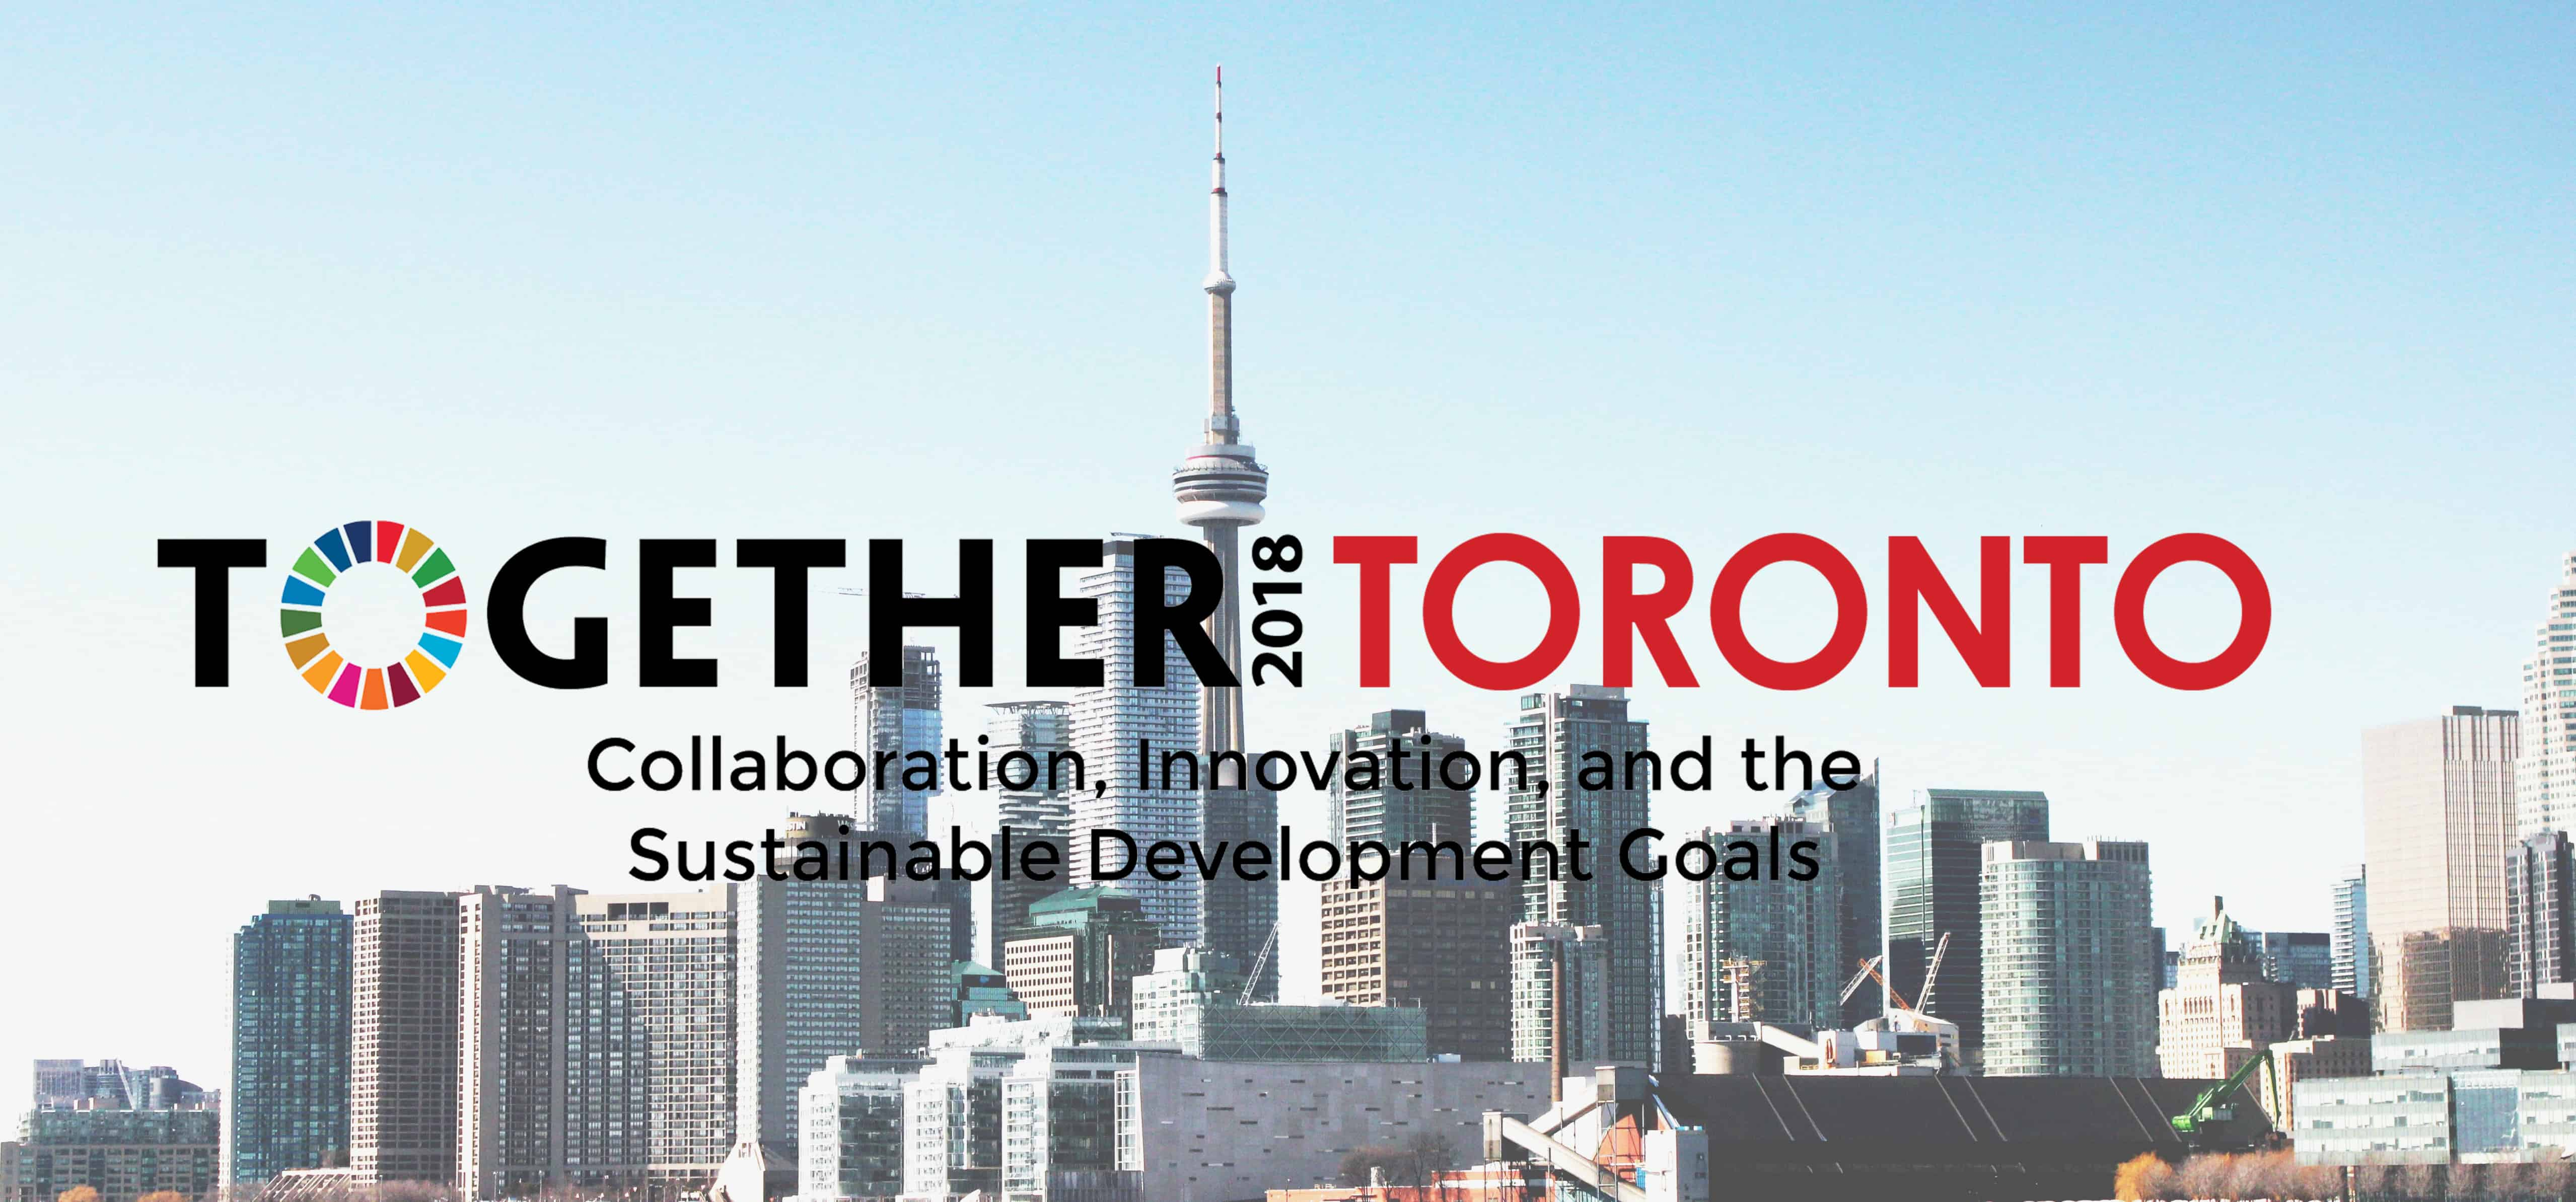 Together2018 banner with Toronto skyline